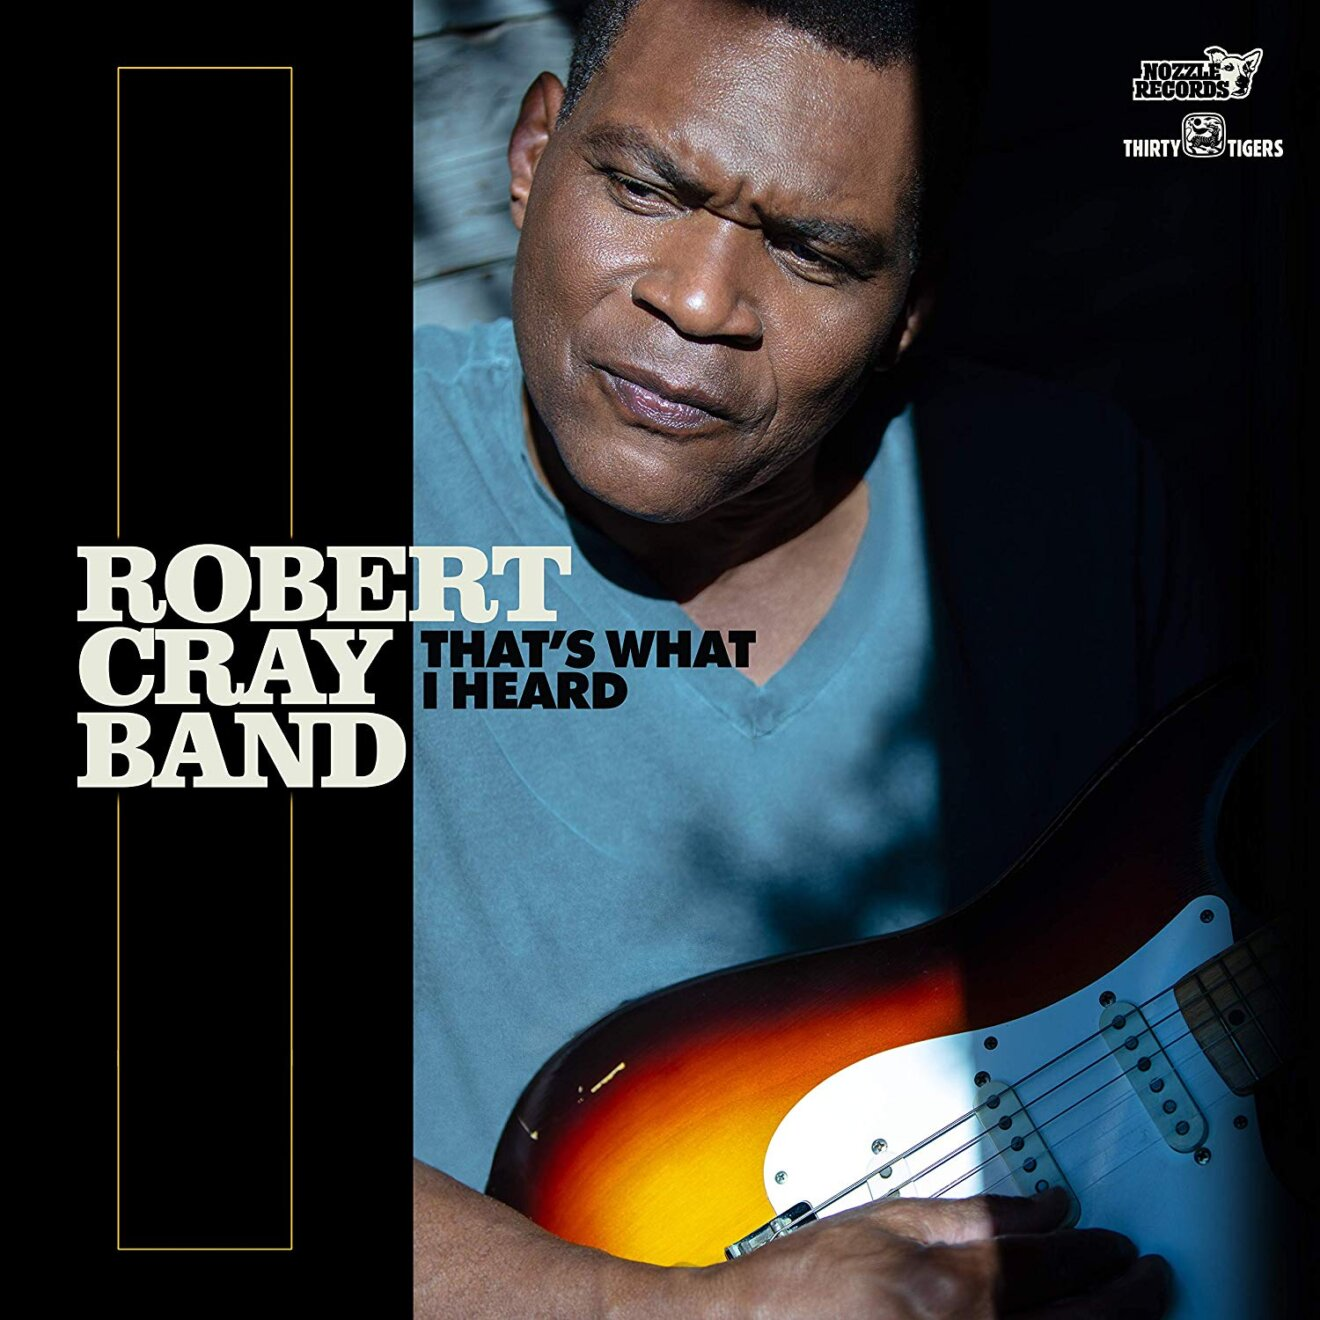 The Robert Cray Band Thats What I Heard